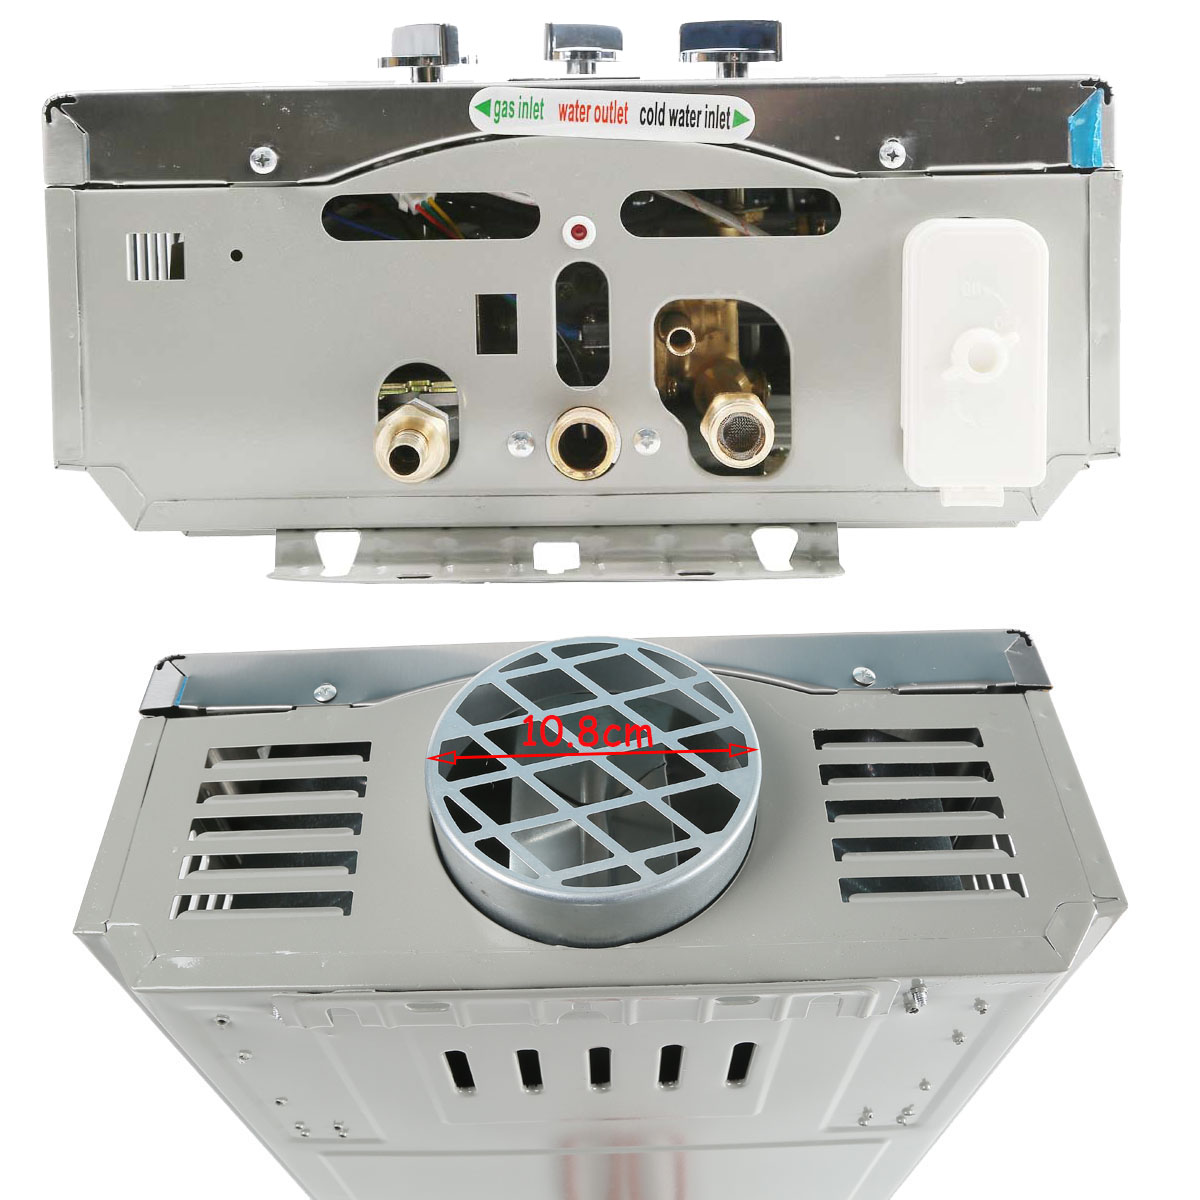 #614A40 12L LPG GAS PROPANE HOT WATER HEATER HOME 2.6GPM TANKLESS  Brand New 4601 Hydronic Duct Heater images with 1200x1200 px on helpvideos.info - Air Conditioners, Air Coolers and more